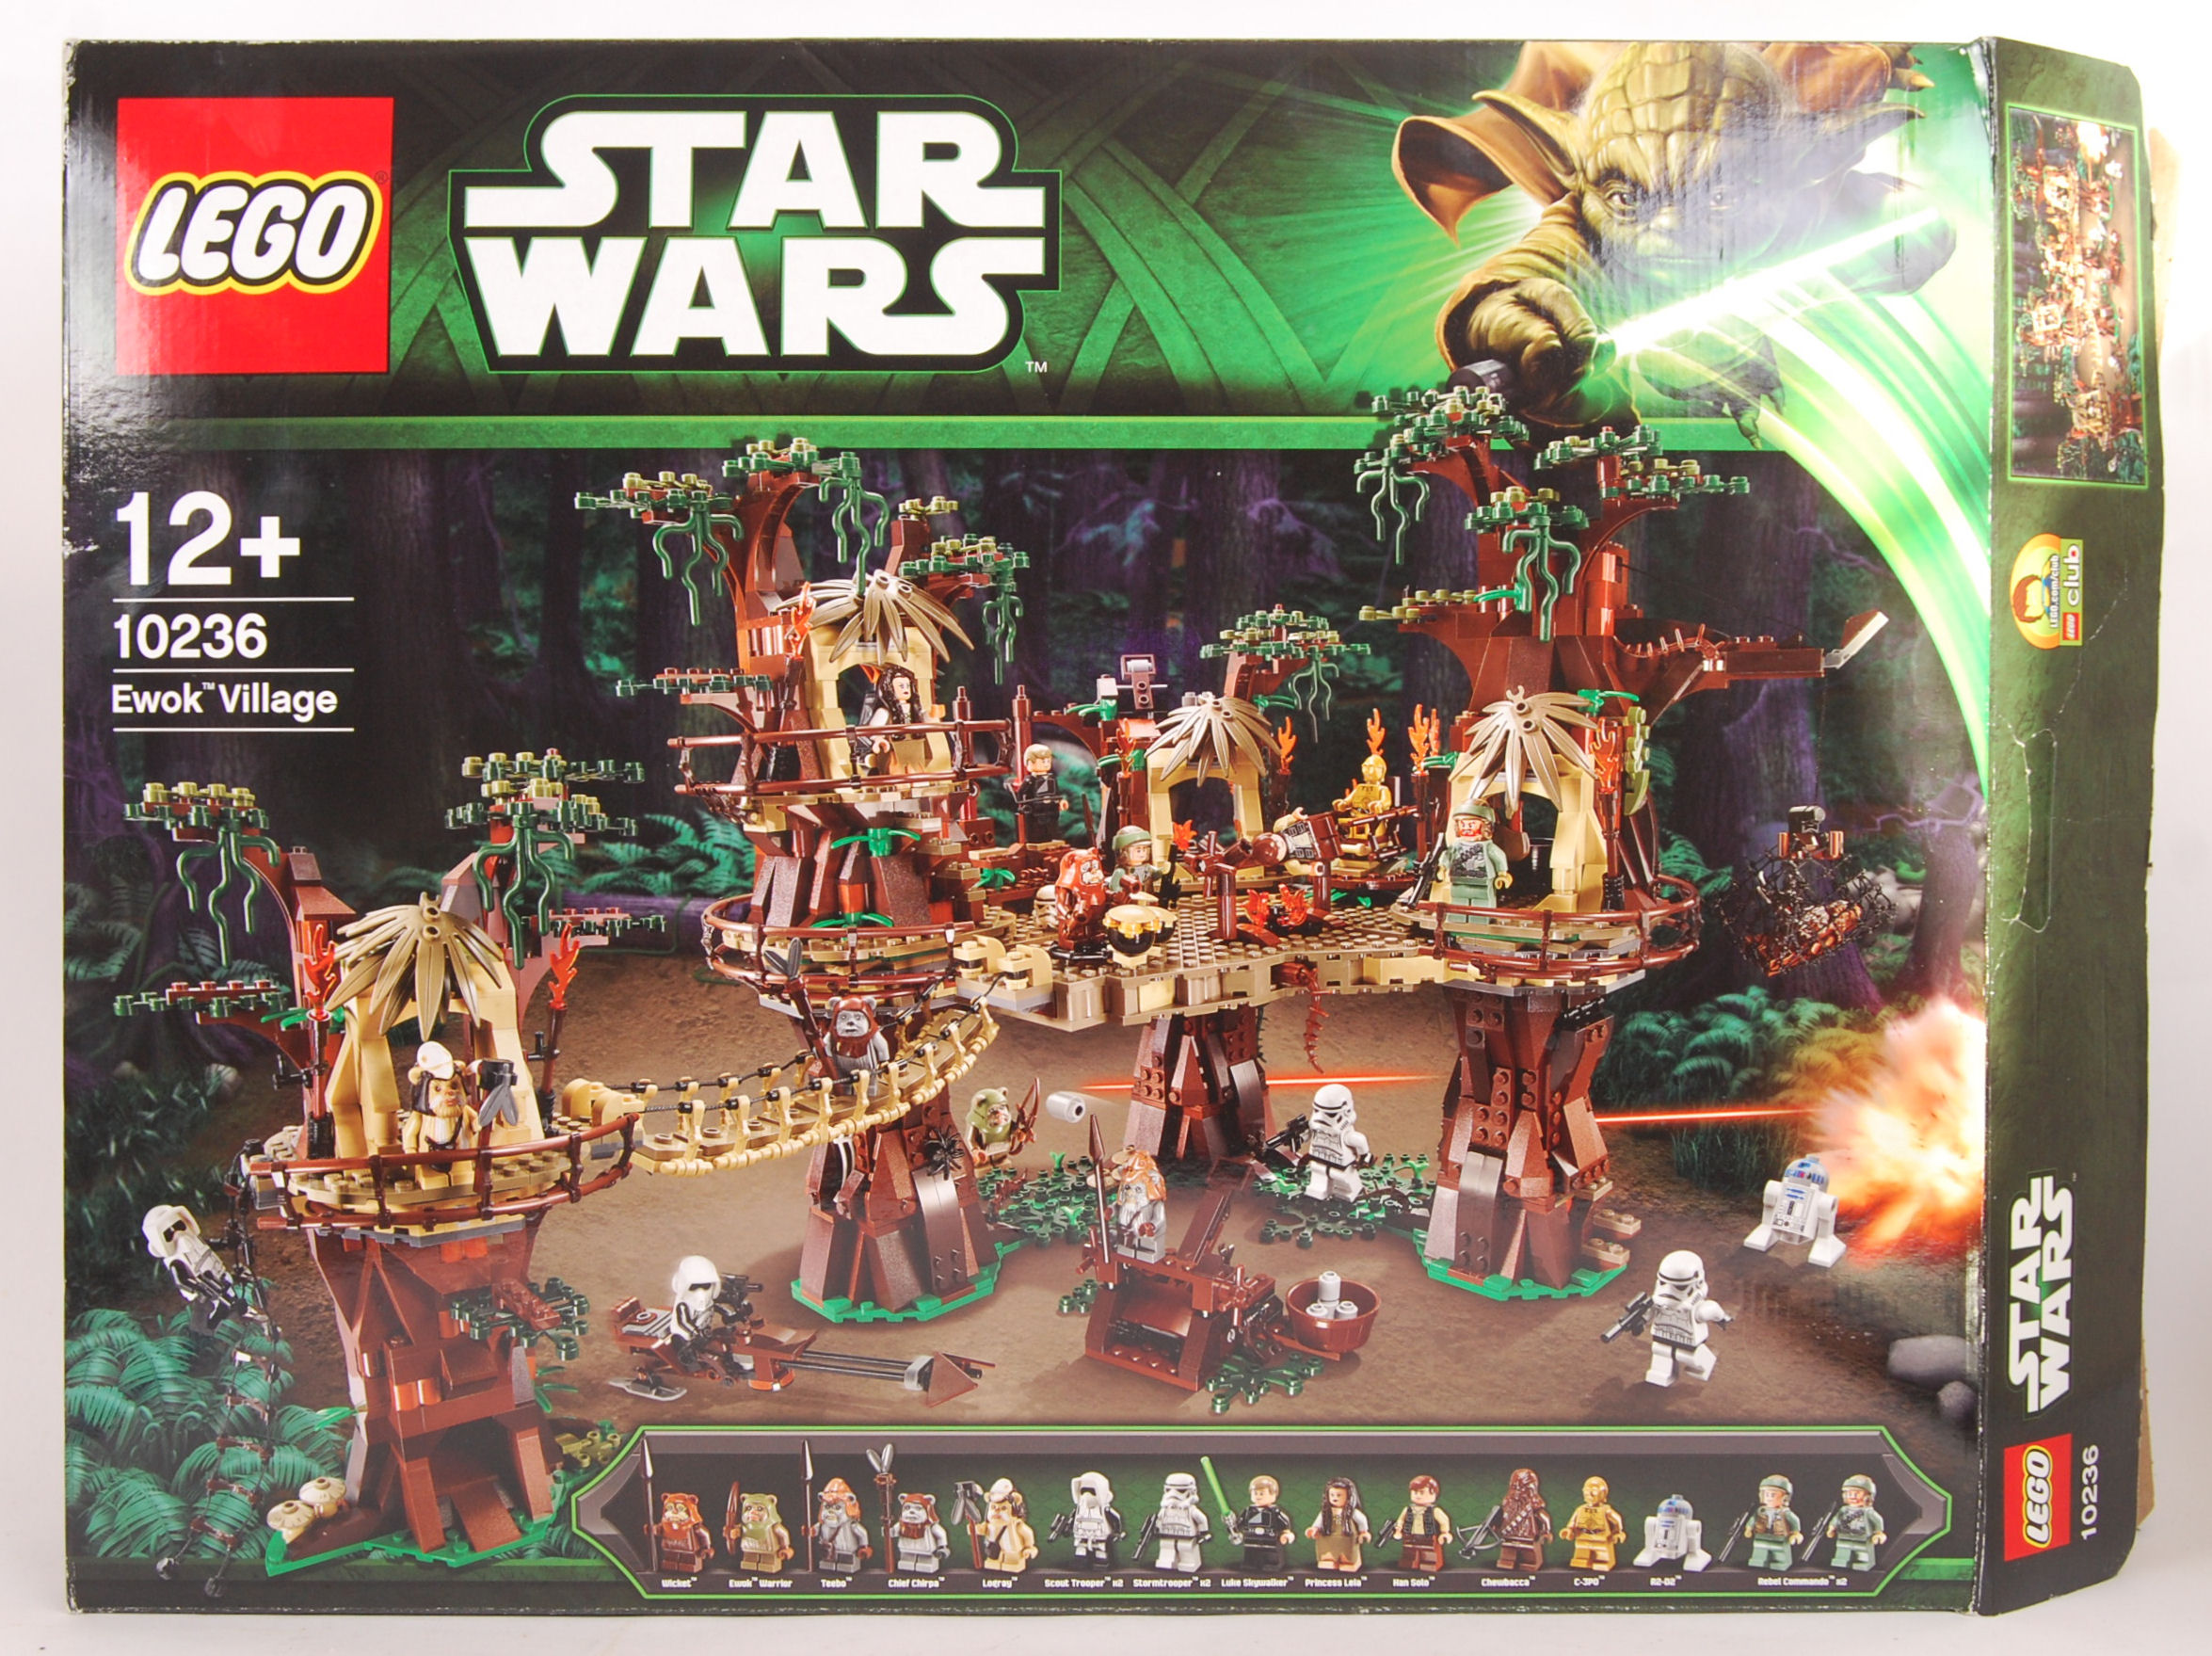 A Lego Star Wars 10236 Set Ewok Village Boxed With All Figures